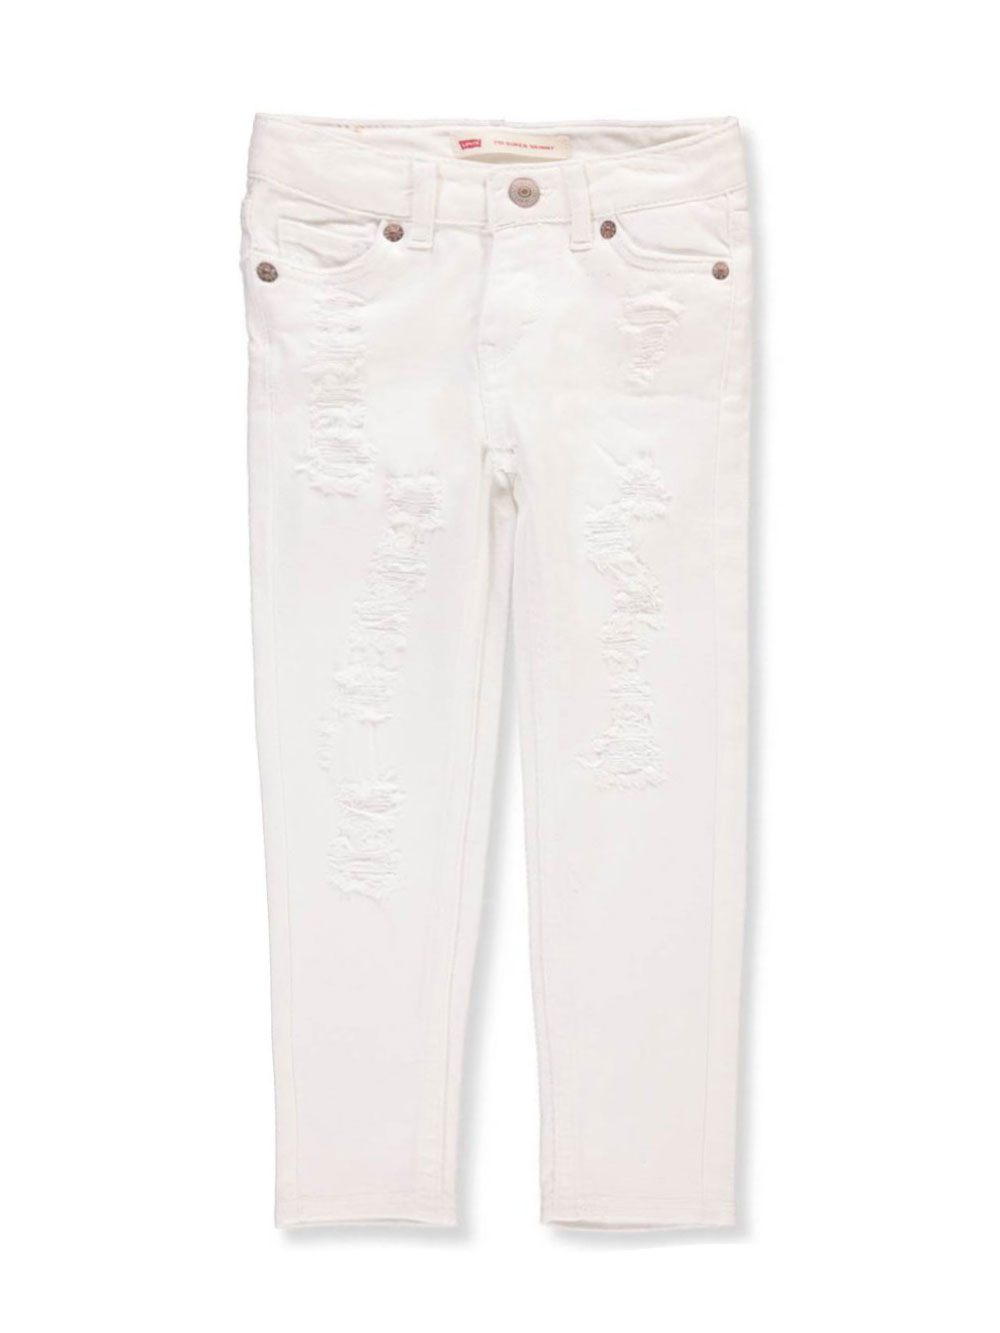 ef370be4b Girls' 710 Super Skinny Jeans by Levi's in rose and white from ...